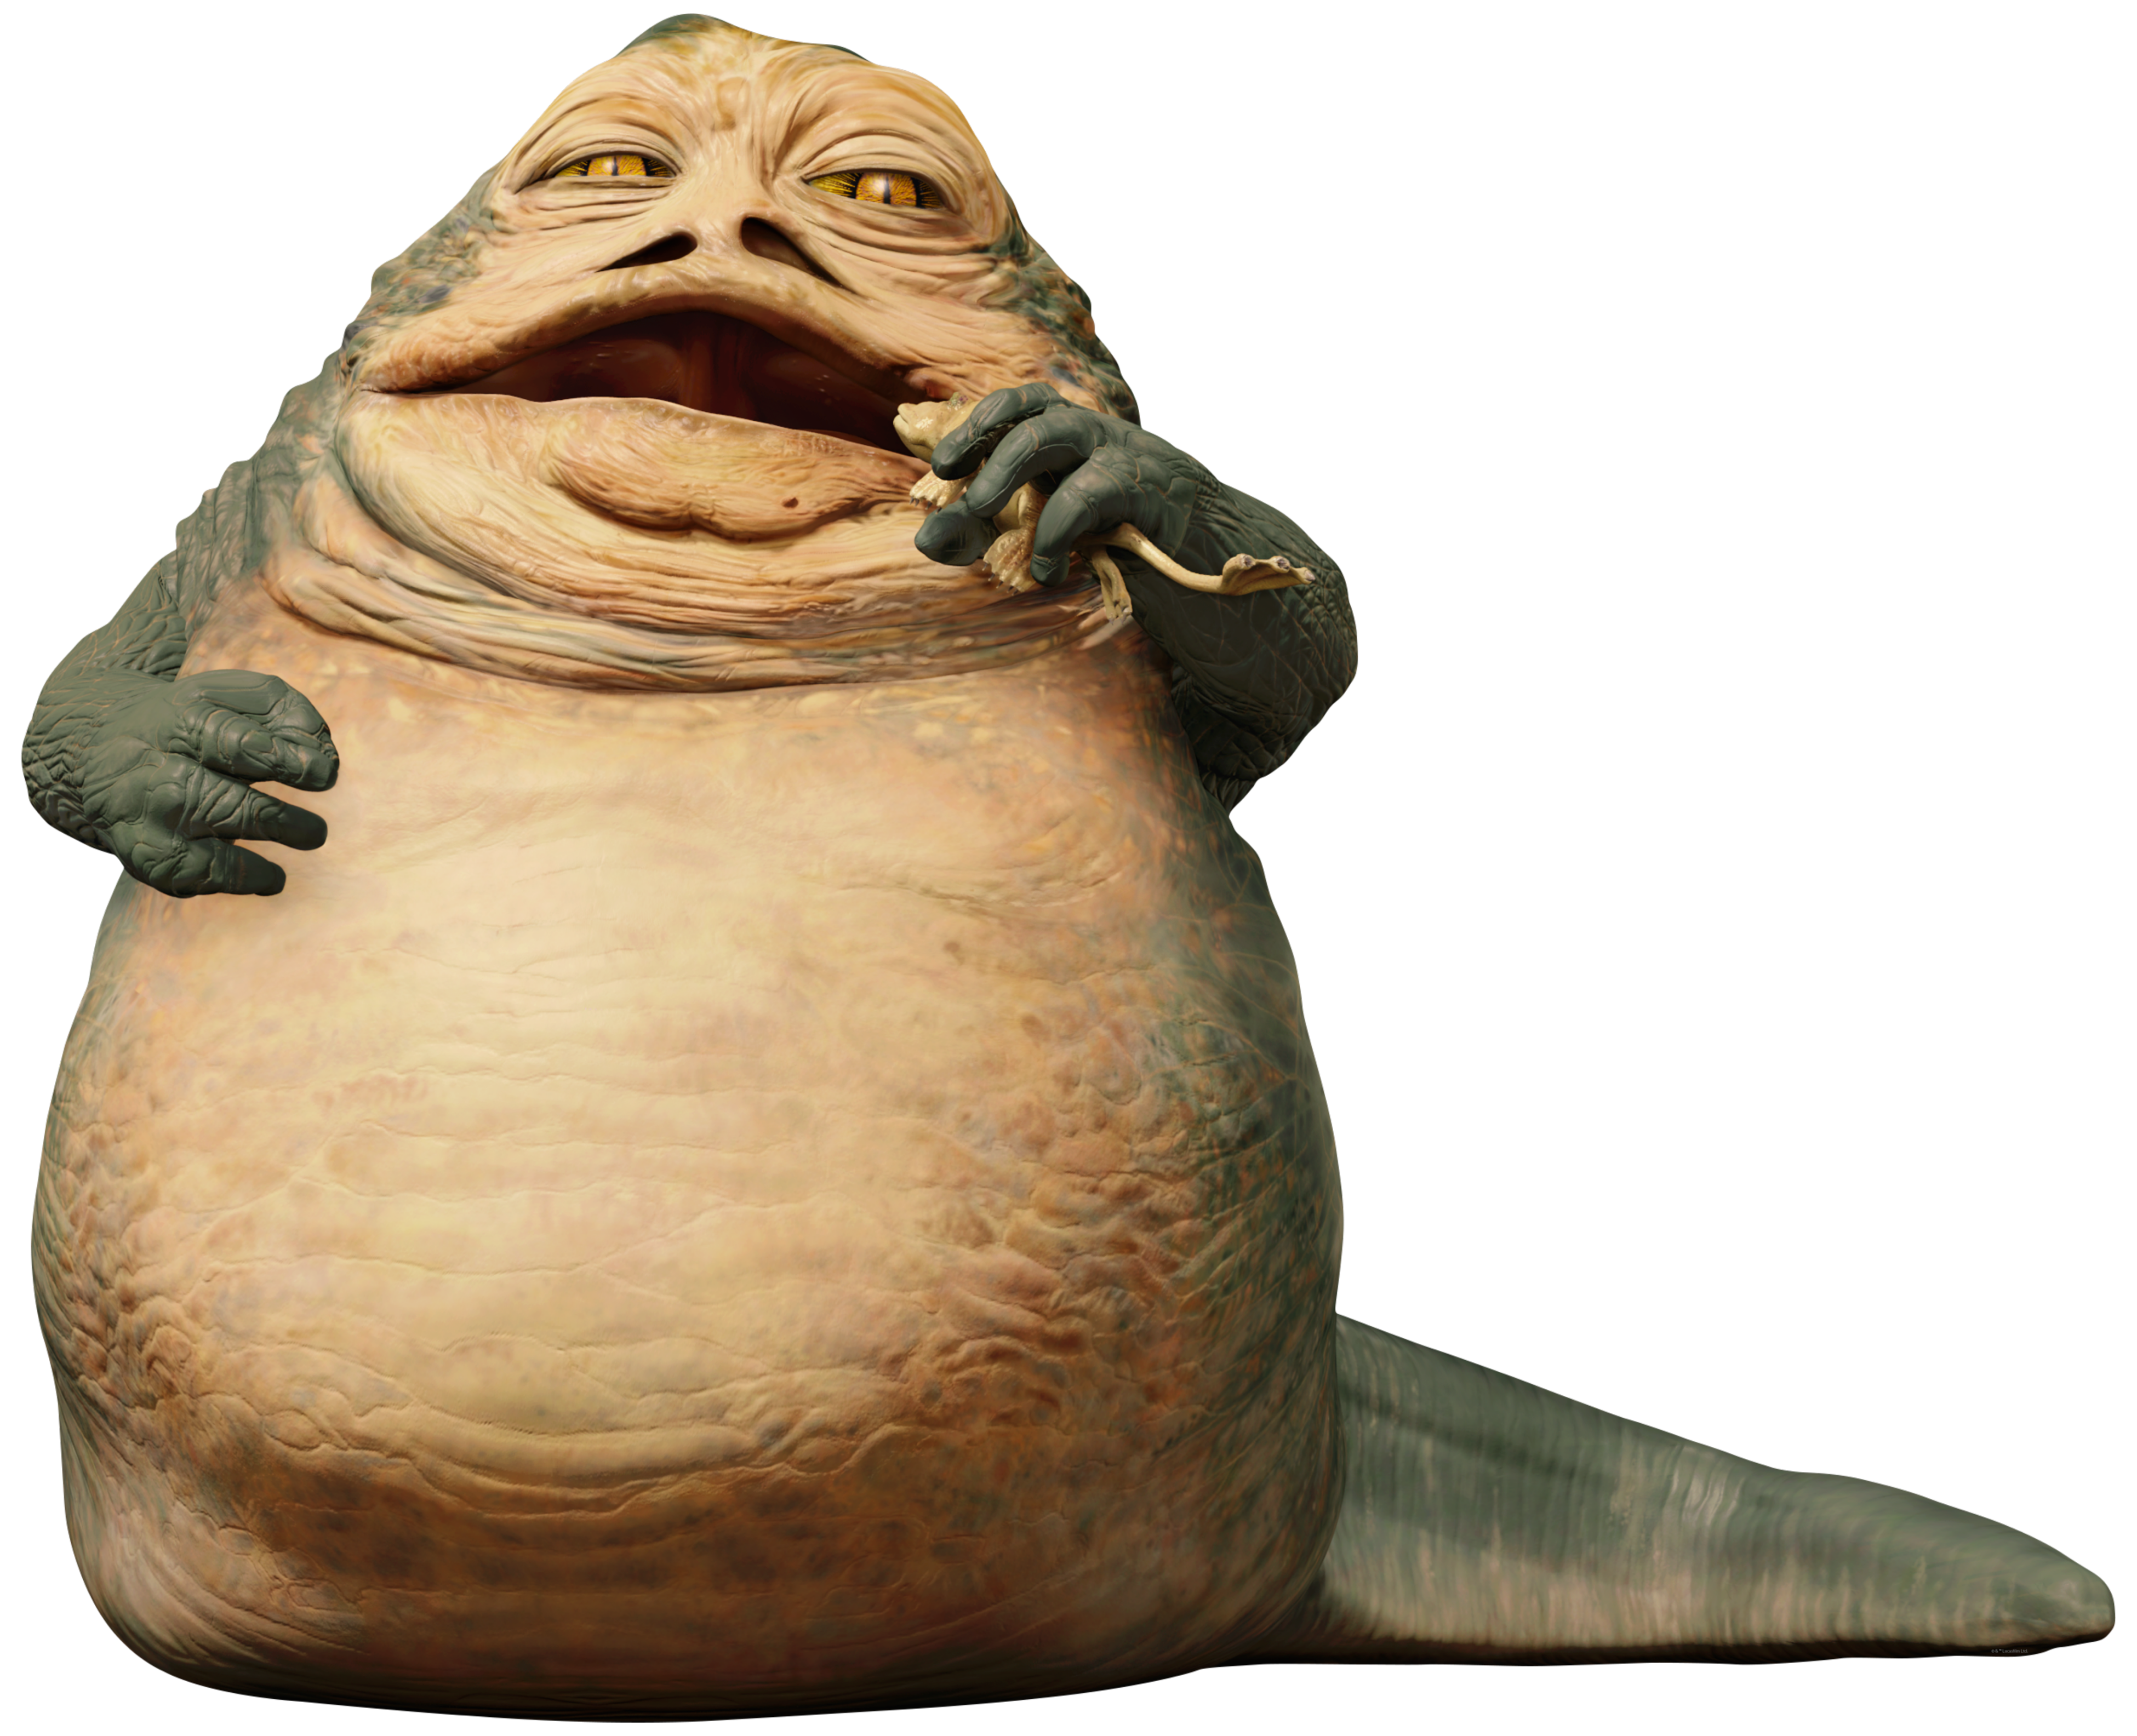 Jabba the hutt star wars clipart png free library Jabba Desilijic Tiure | Wookieepedia | FANDOM powered by Wikia png free library